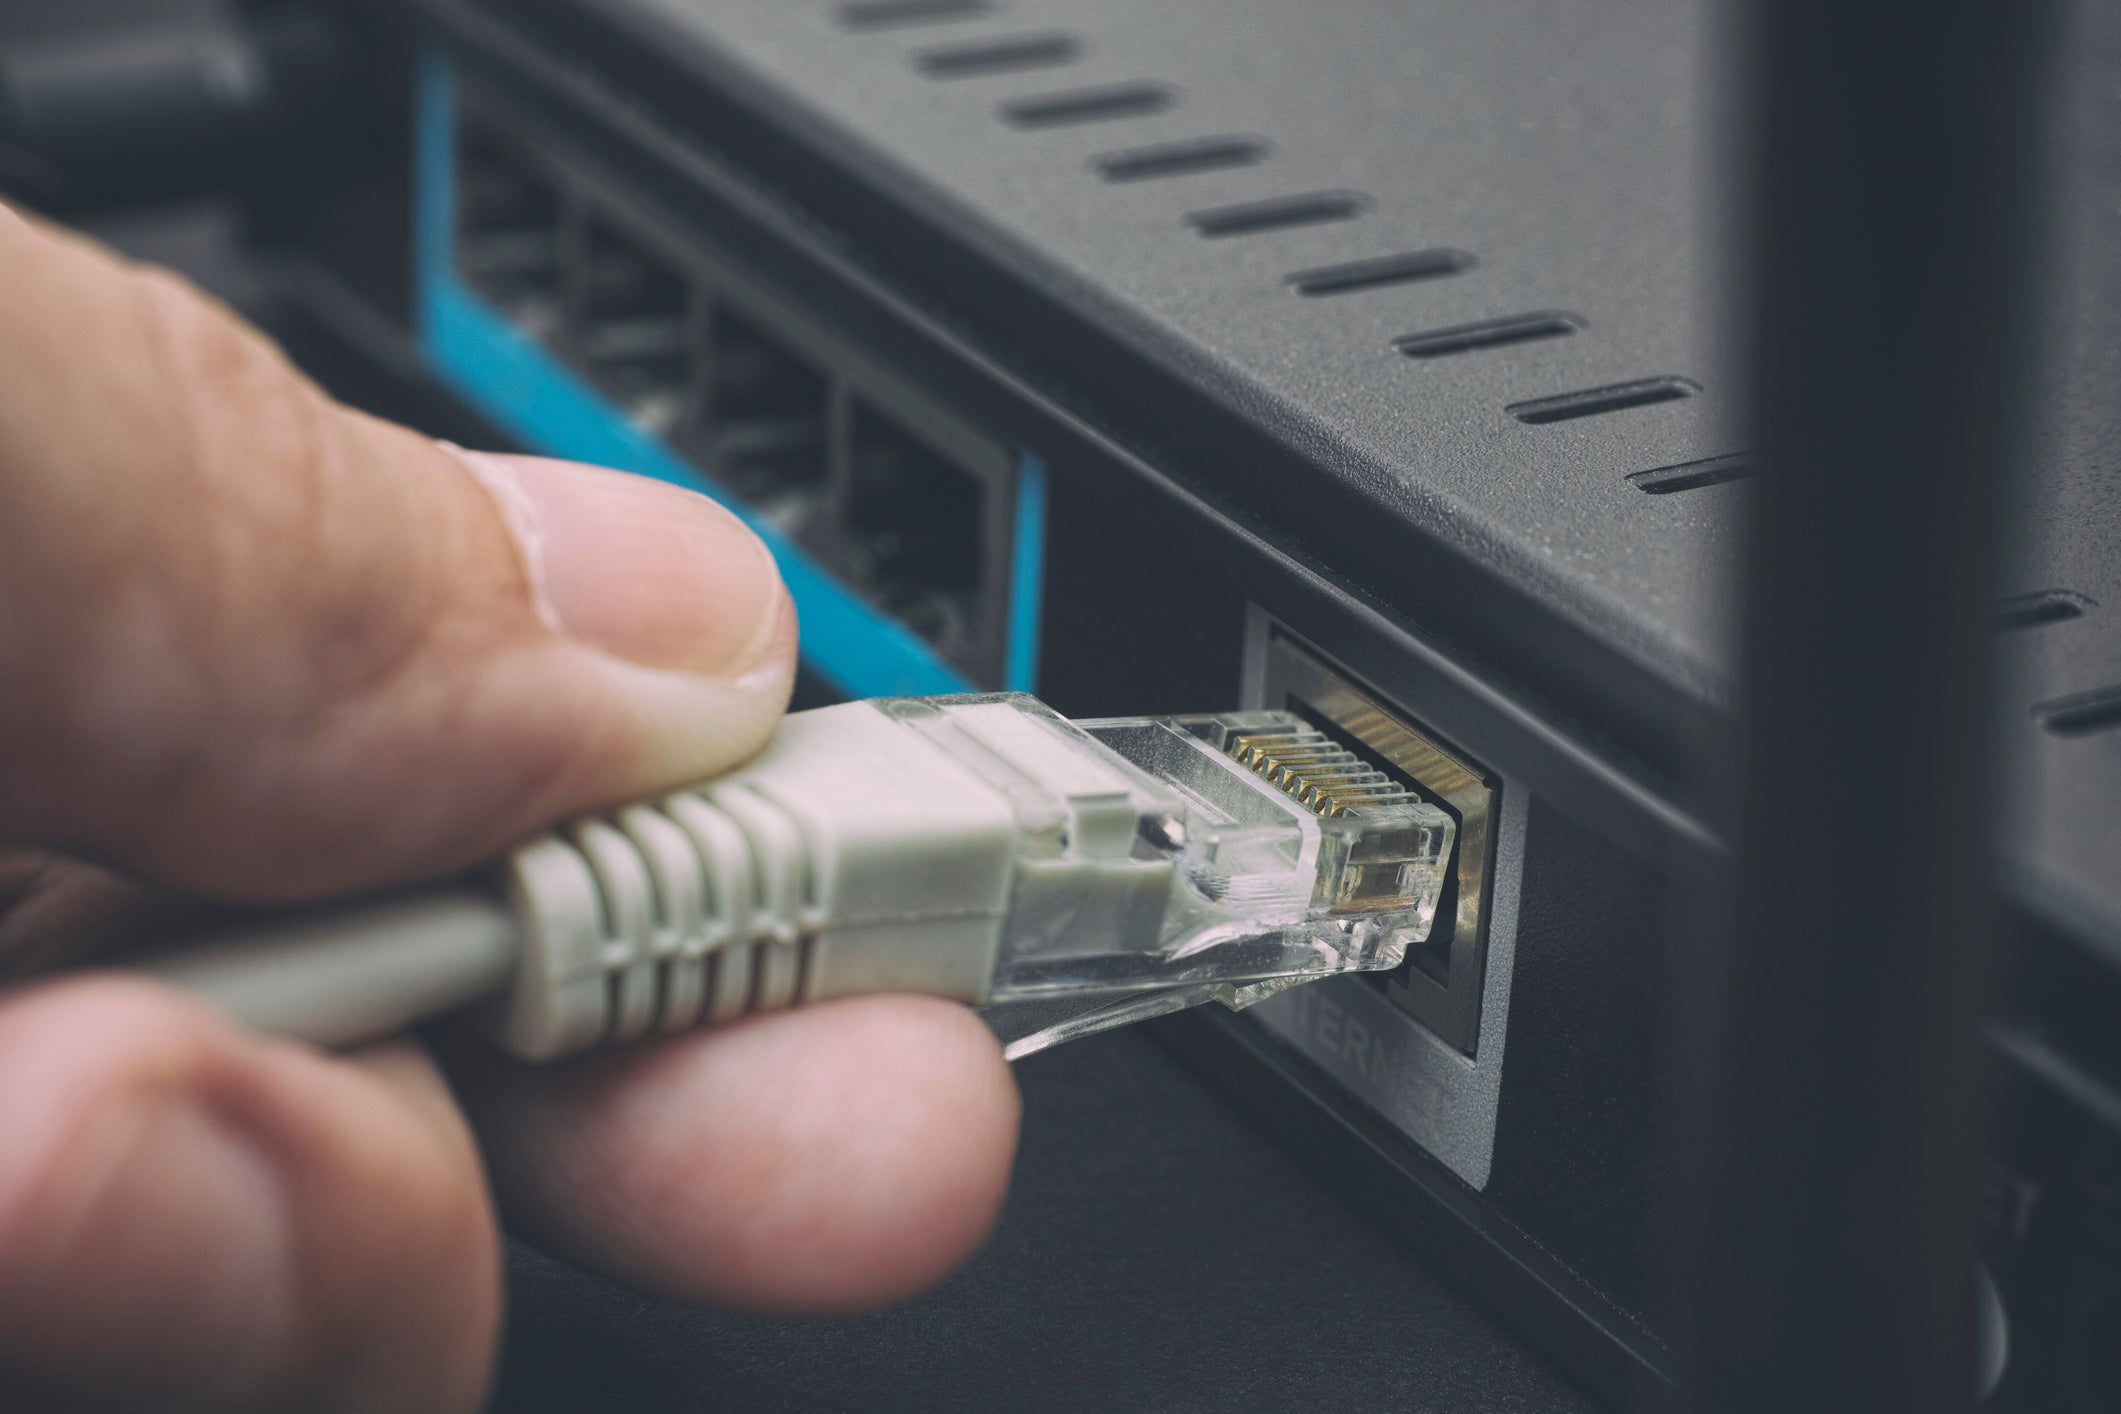 3 Ways to Cut Your Cable and Internet Bill -- The Motley Fool